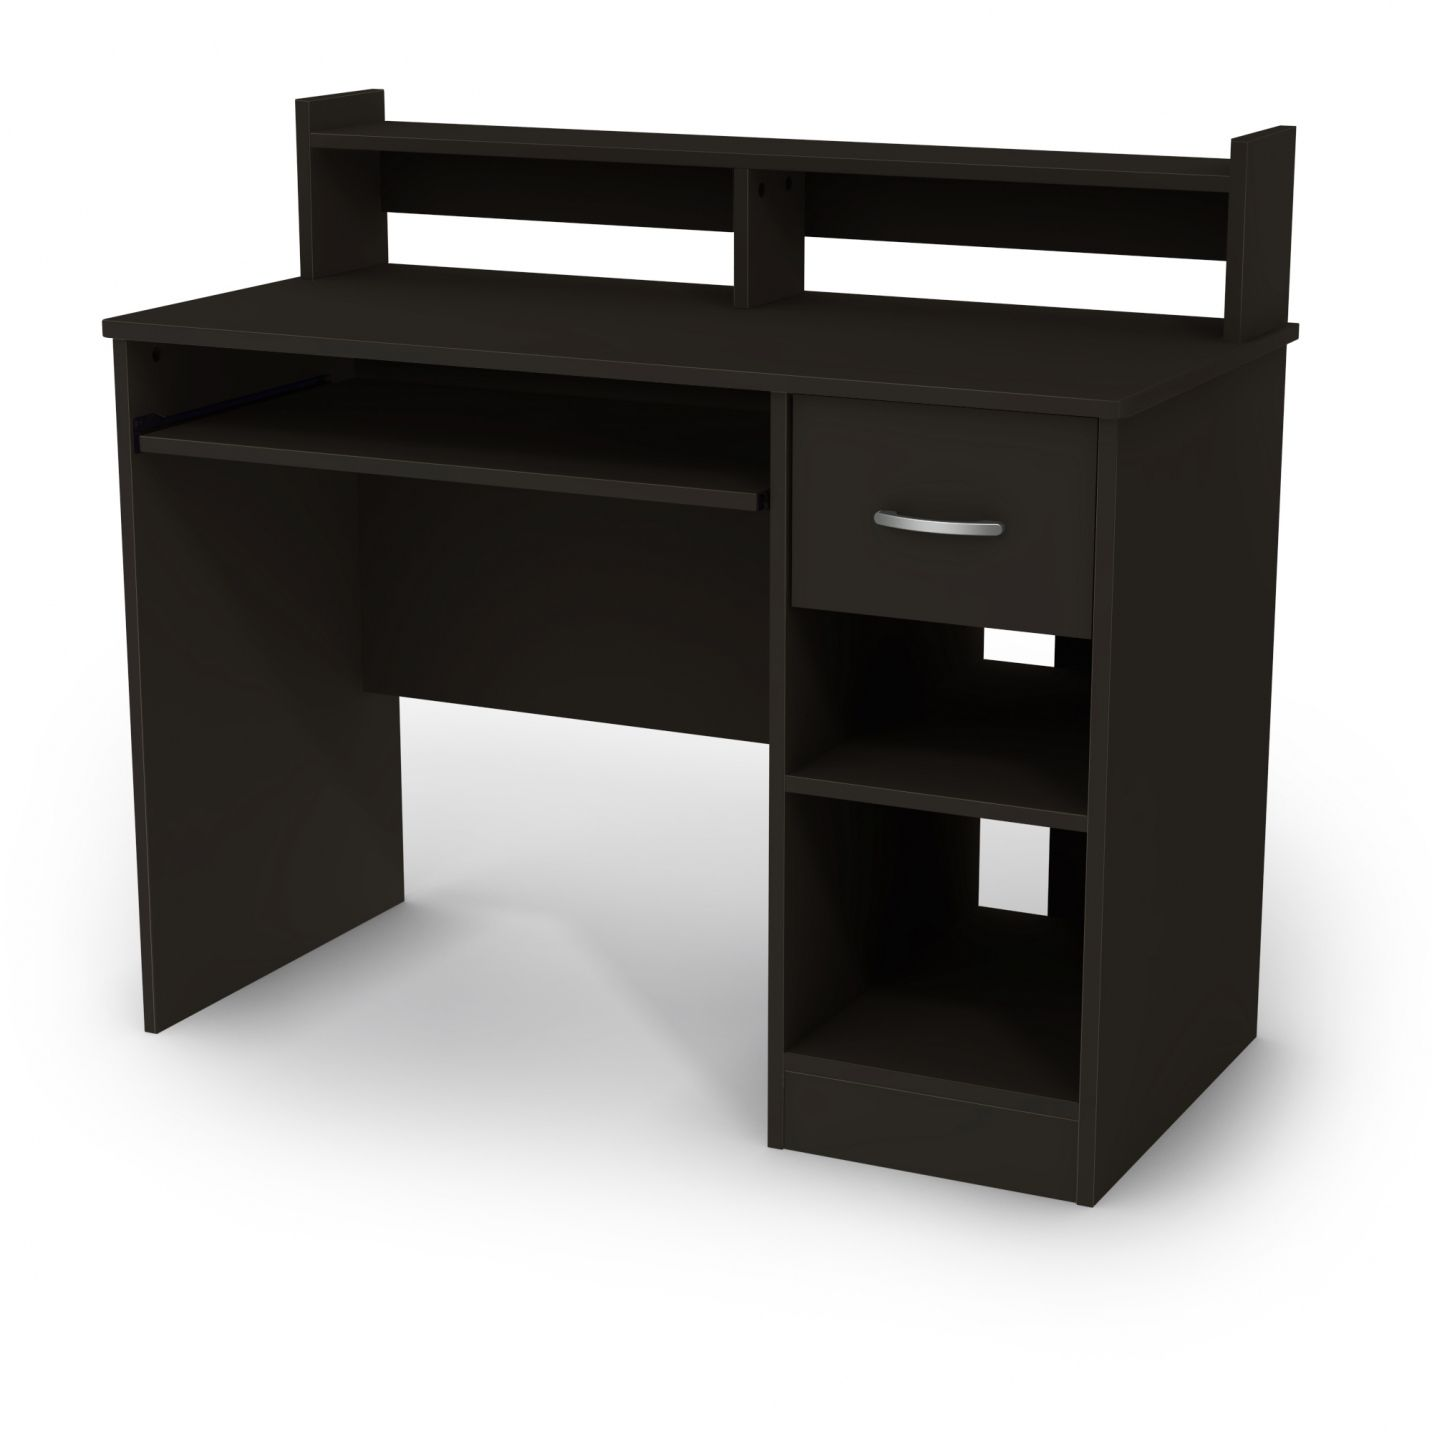 Black Small Desk Home fice Furniture Collections Check more at